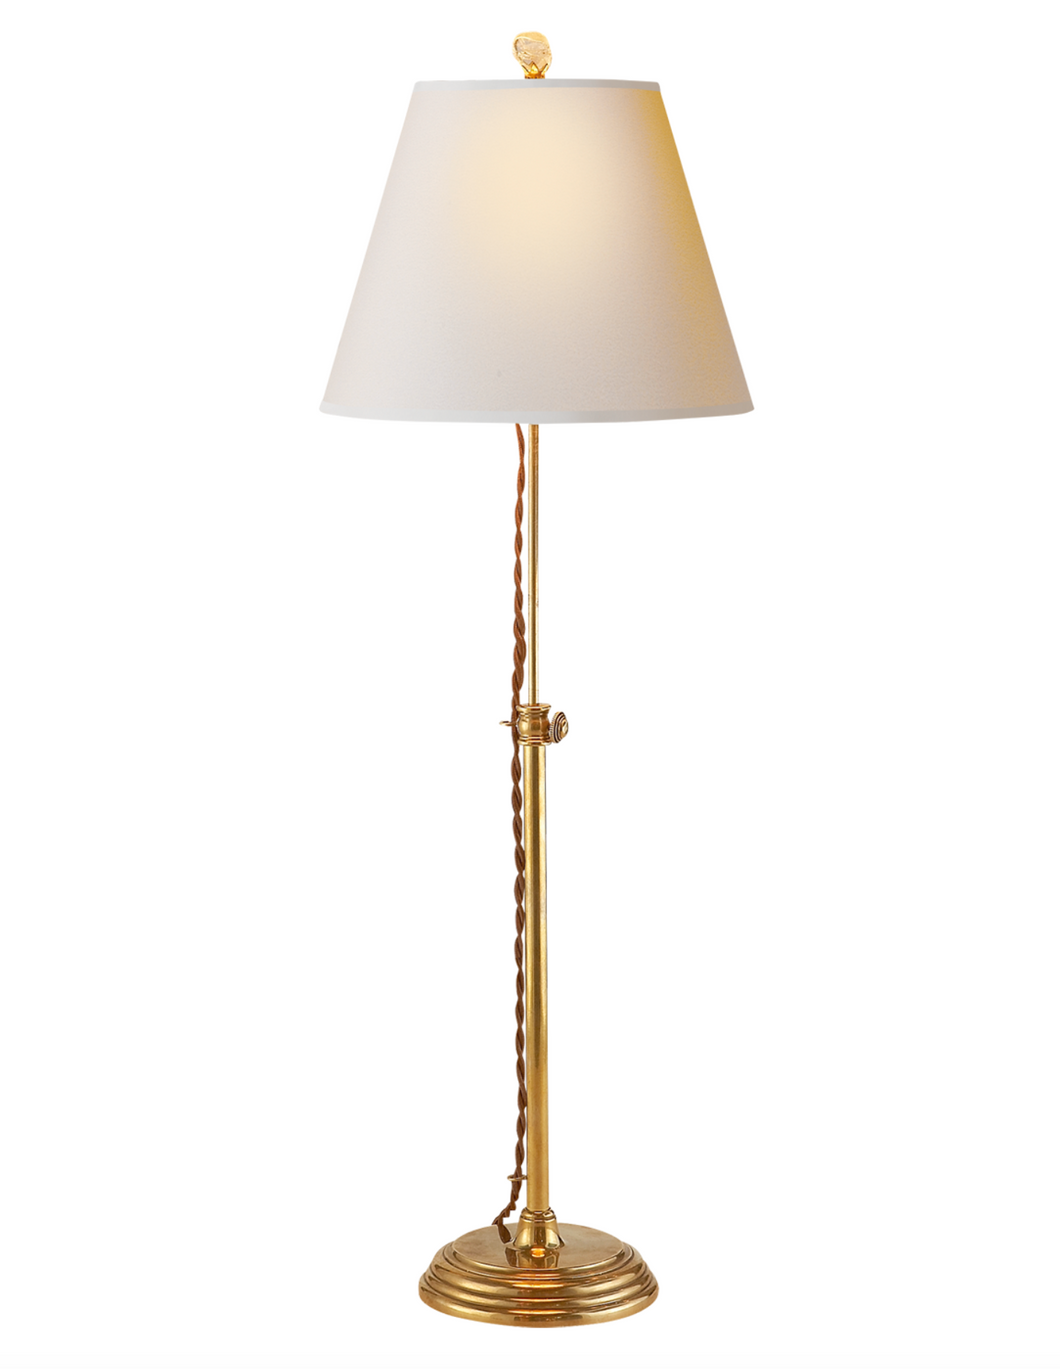 Adjustable Table Lamp with Exposed Cord